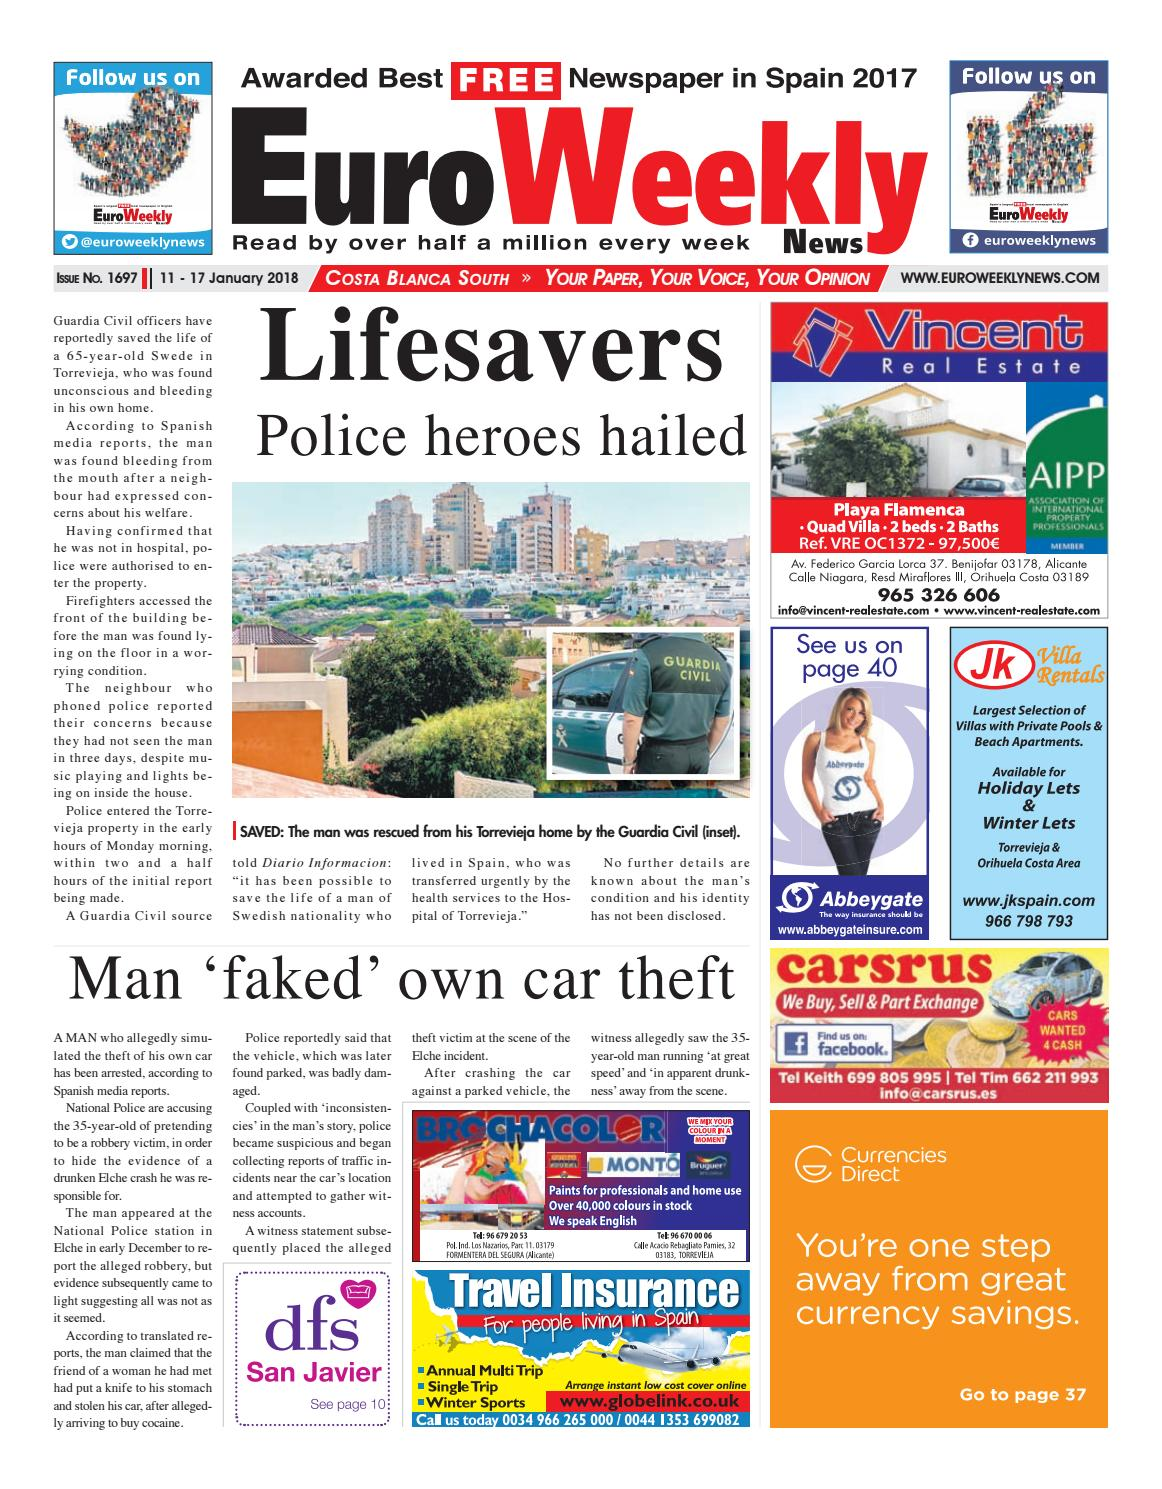 Euro Weekly News Costa Blanca South 11 17 Jan 2018 Issue 1697  # Muebles Lira Gold